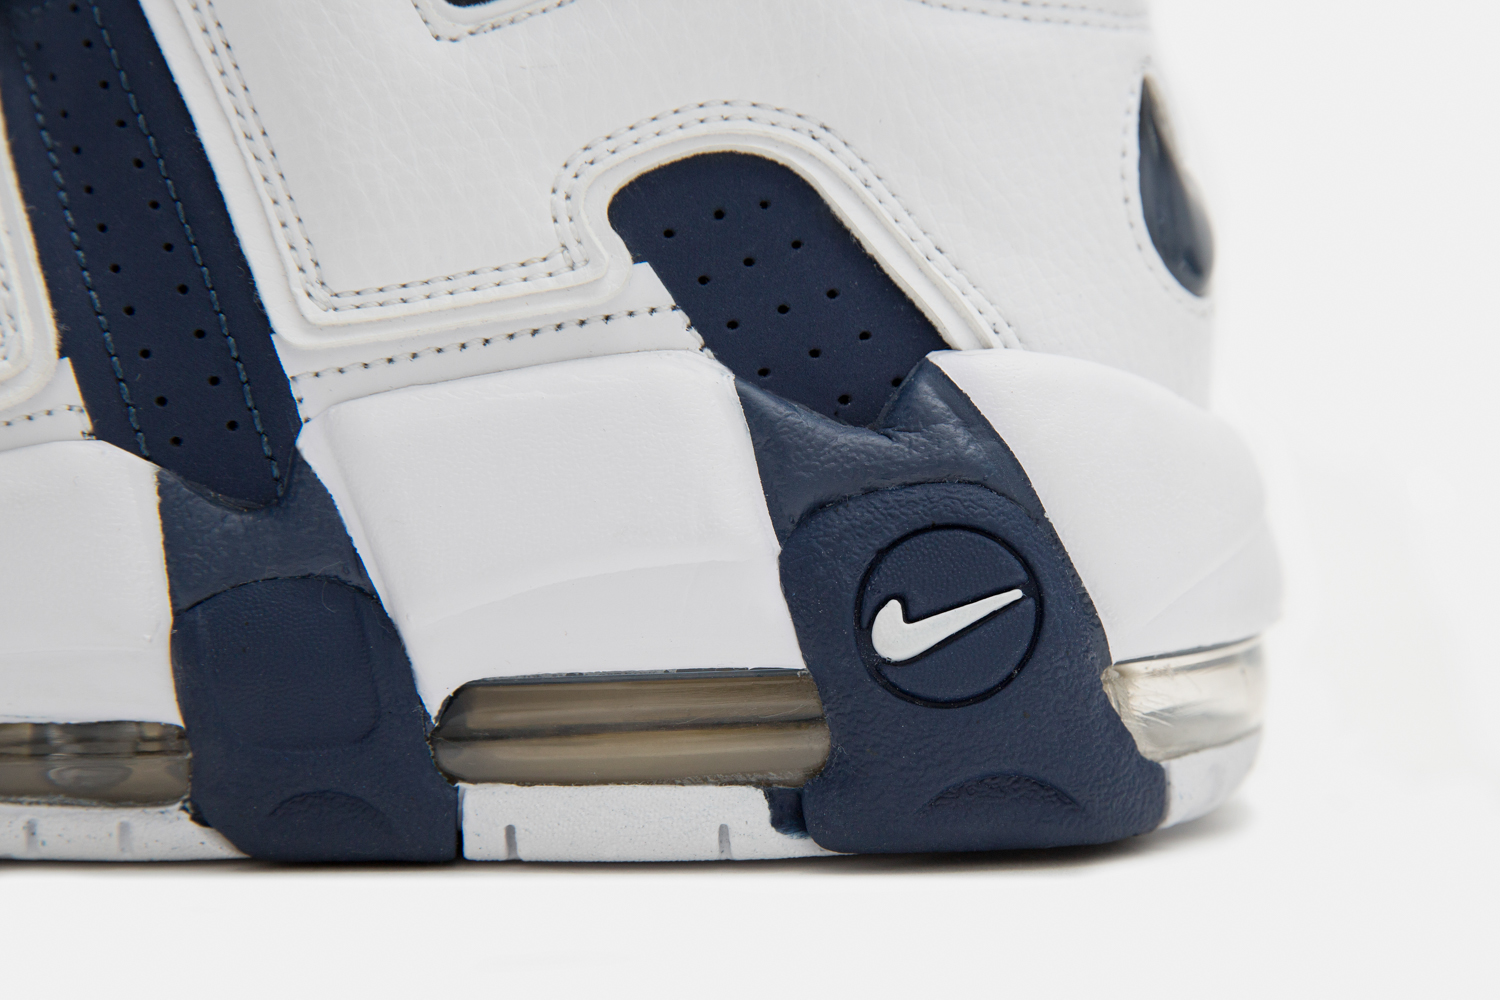 7a2a6ad4a943 ... nike_air_more_uptempo_navy_olympic_size-2  nike_air_more_uptempo_navy_olympic_size-4